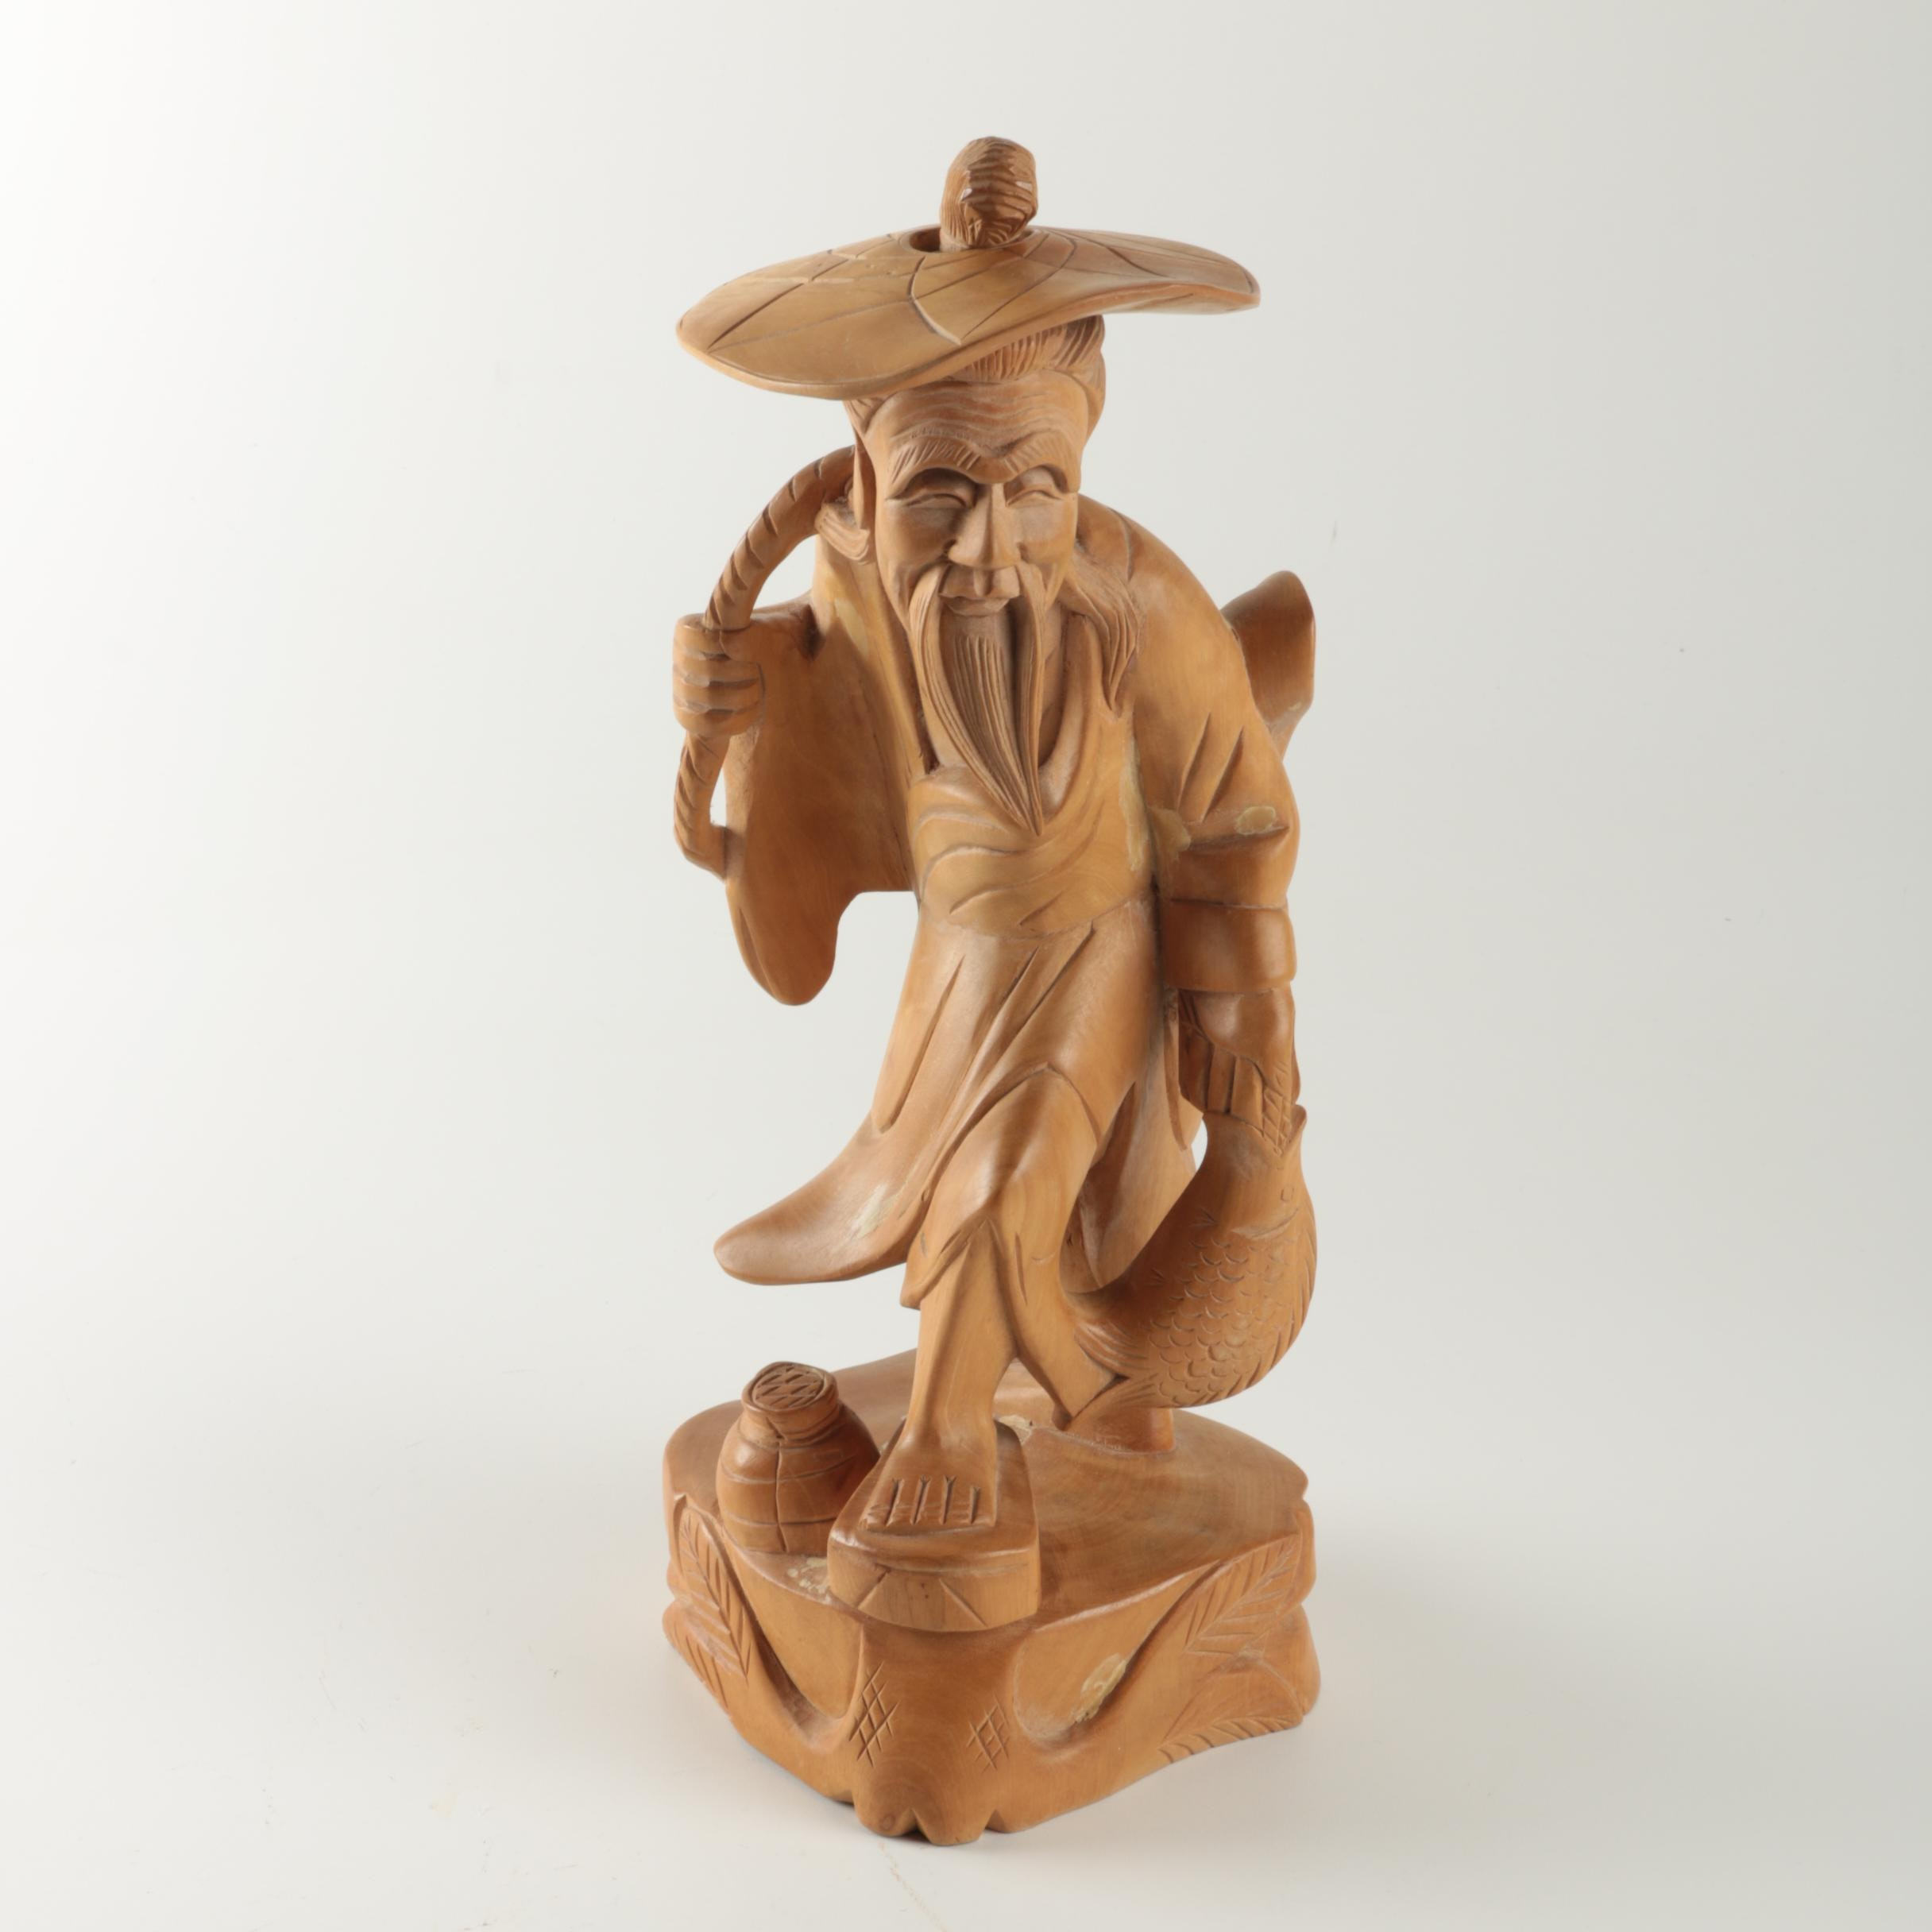 Chinese Carved Wooden Sculpture of a Fisherman